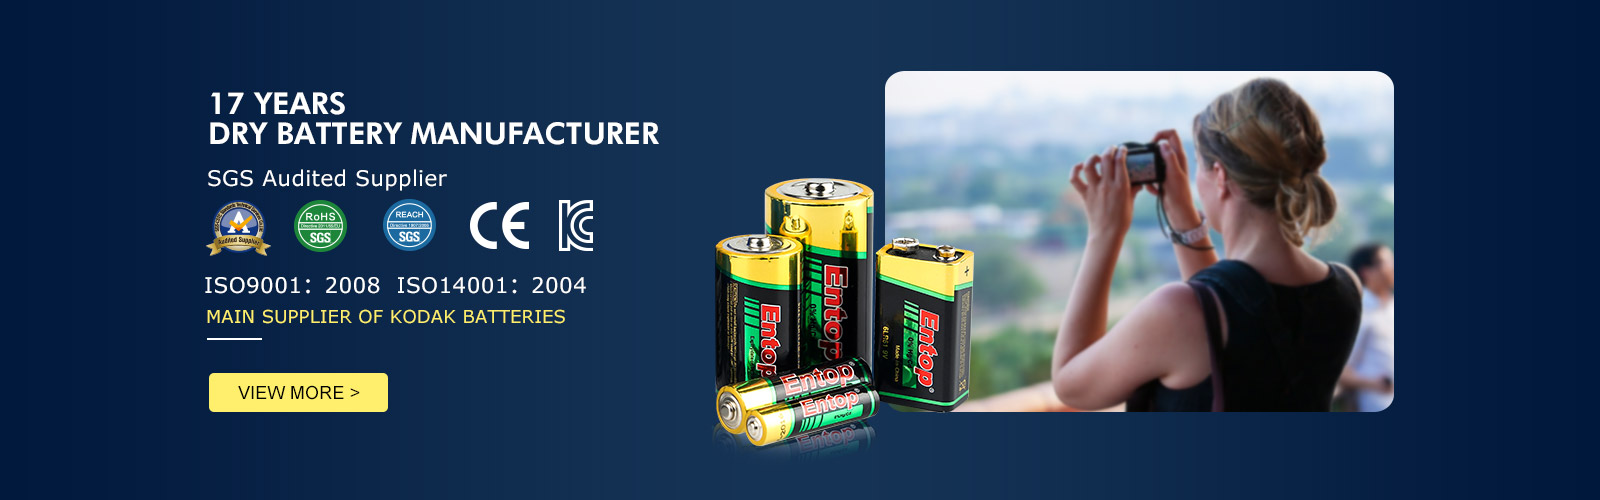 Main Supplier of Kodak Batteries